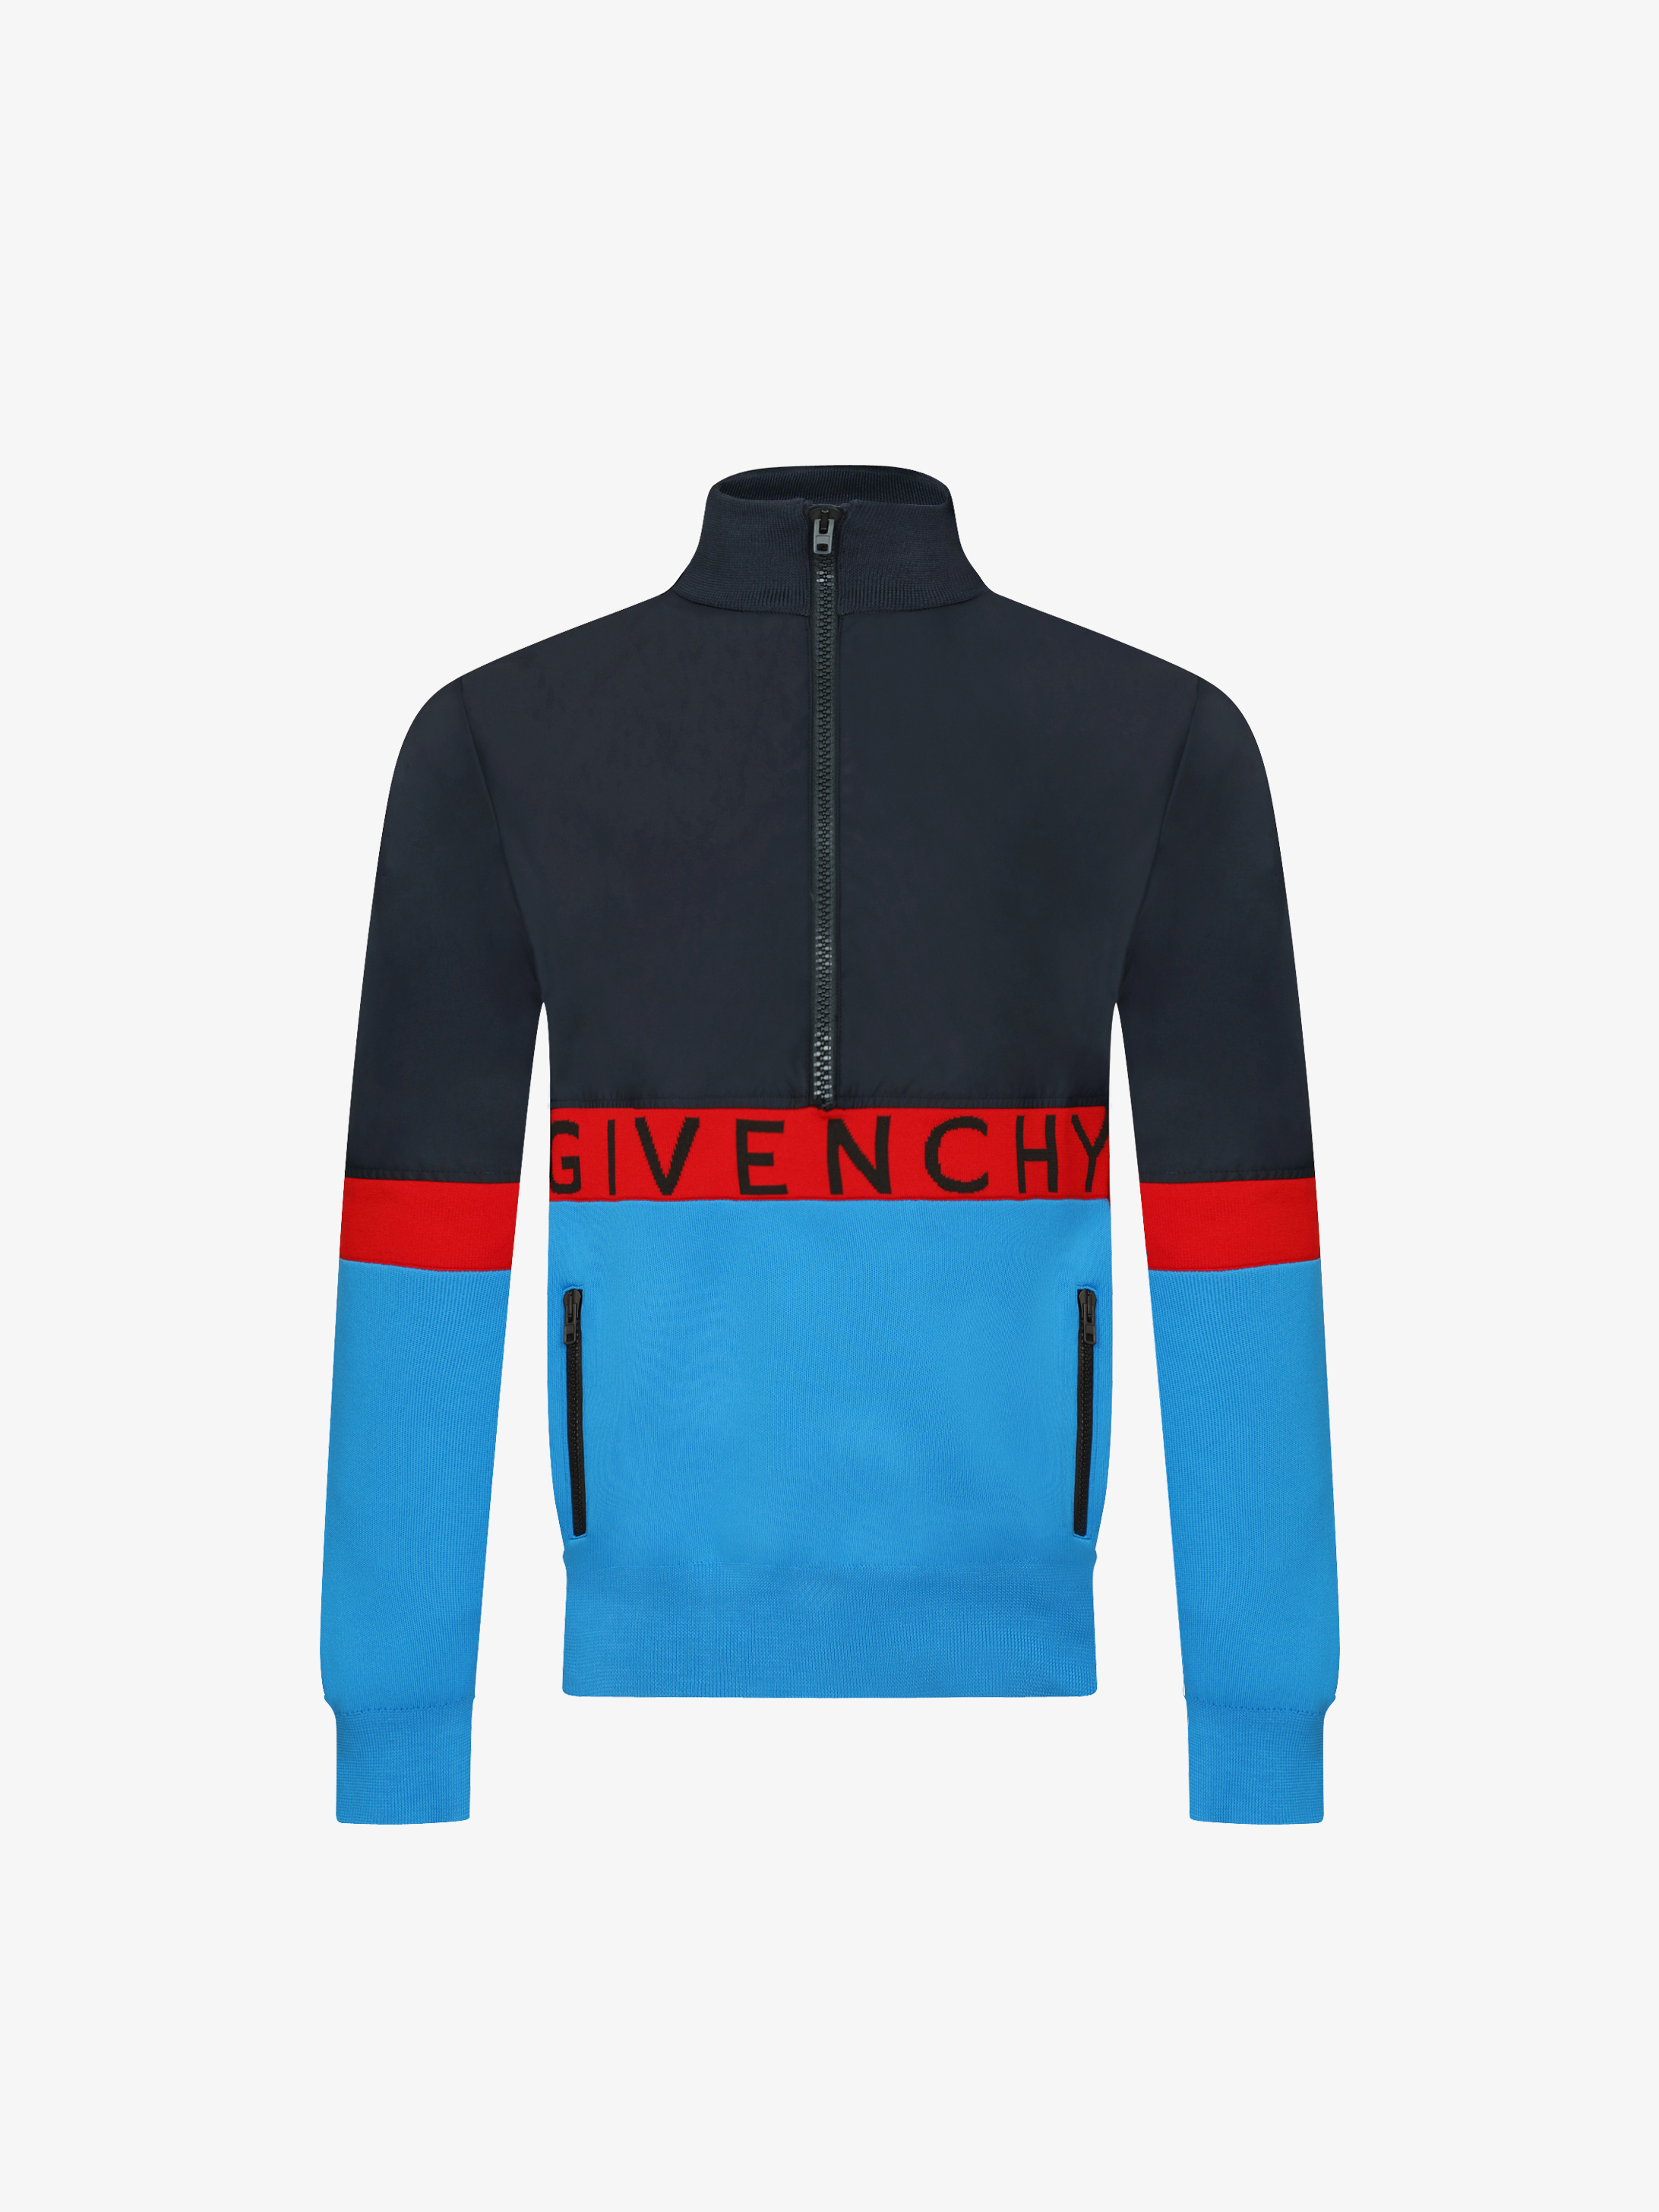 GIVENCHY color block windbreaker